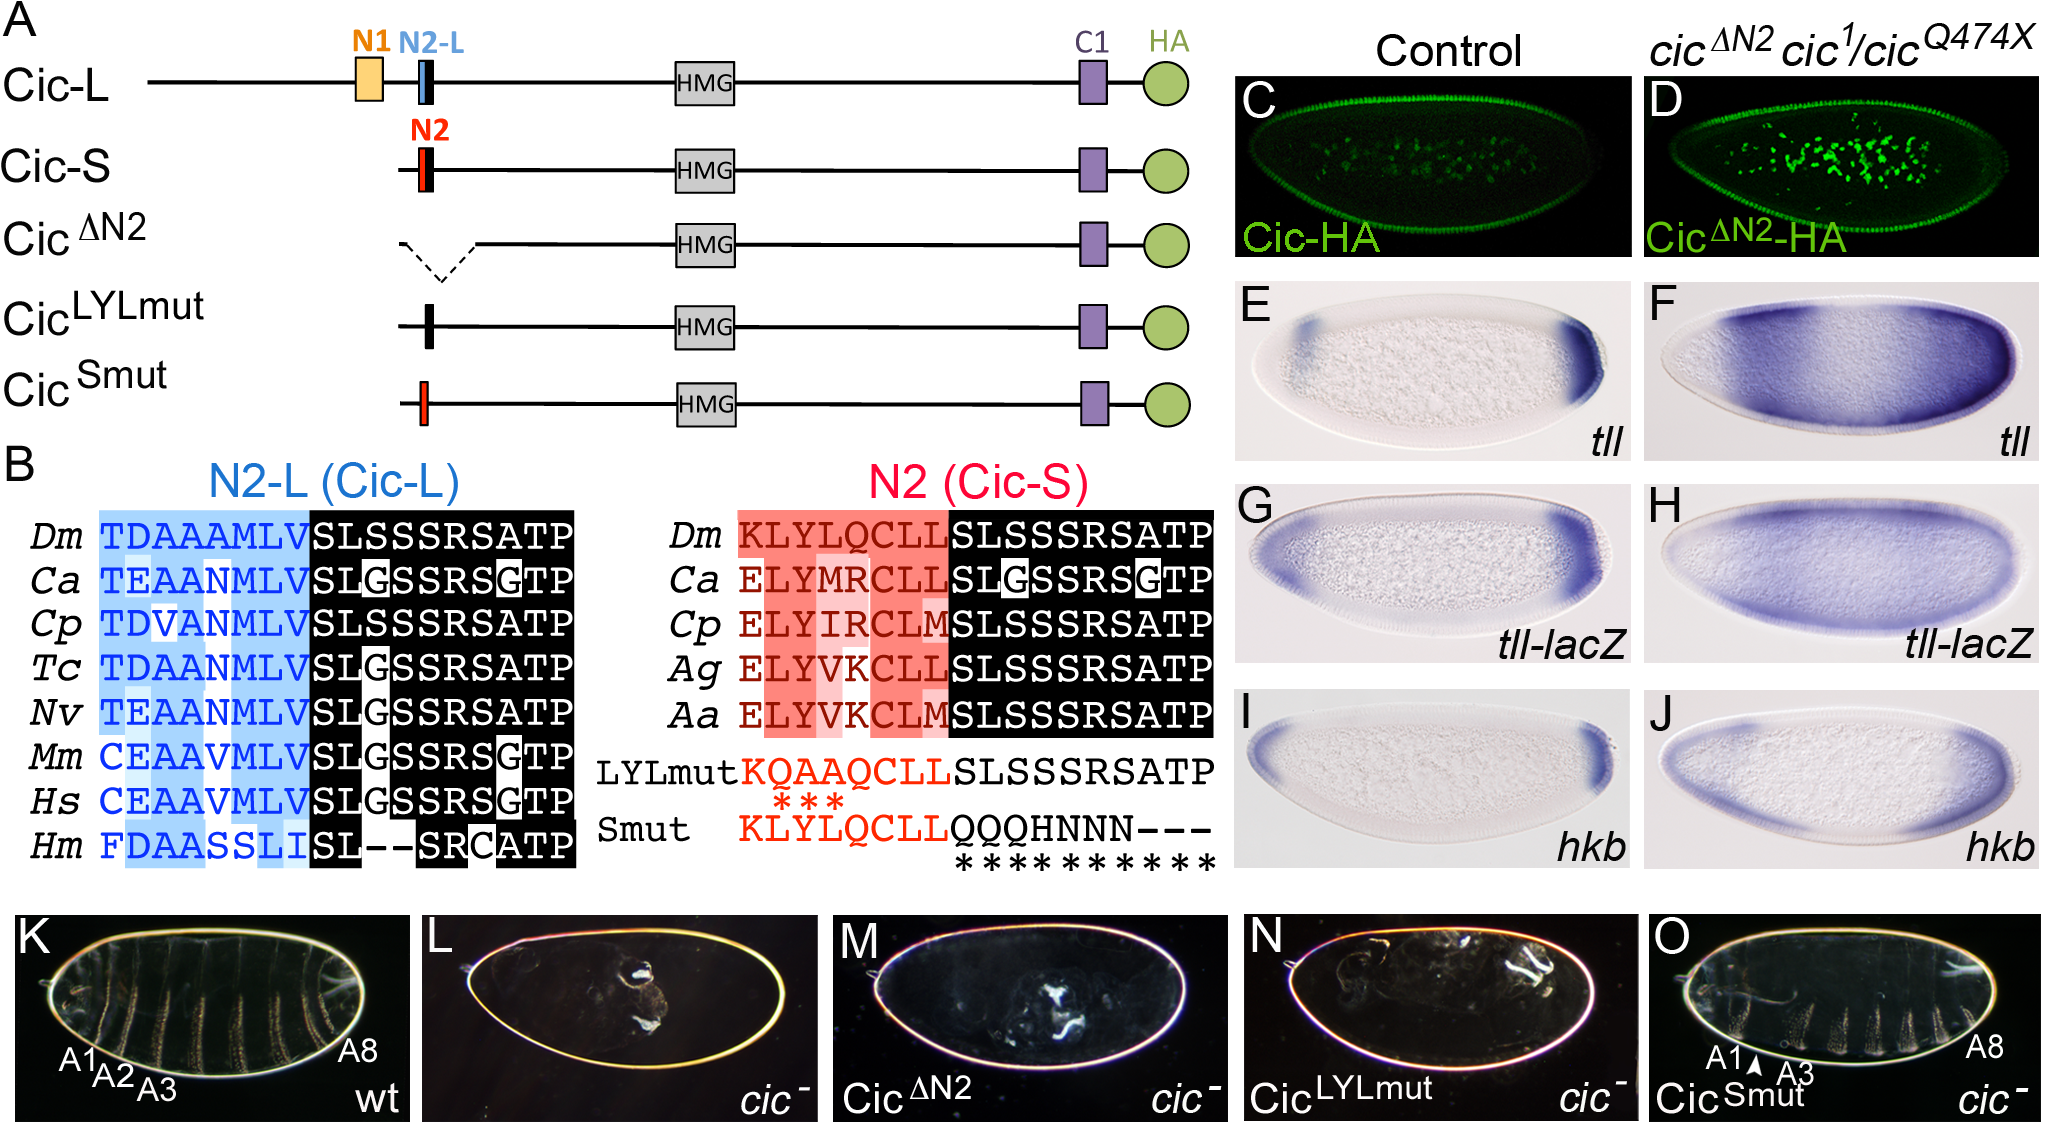 The N2 motif is essential for Cic embryonic function.